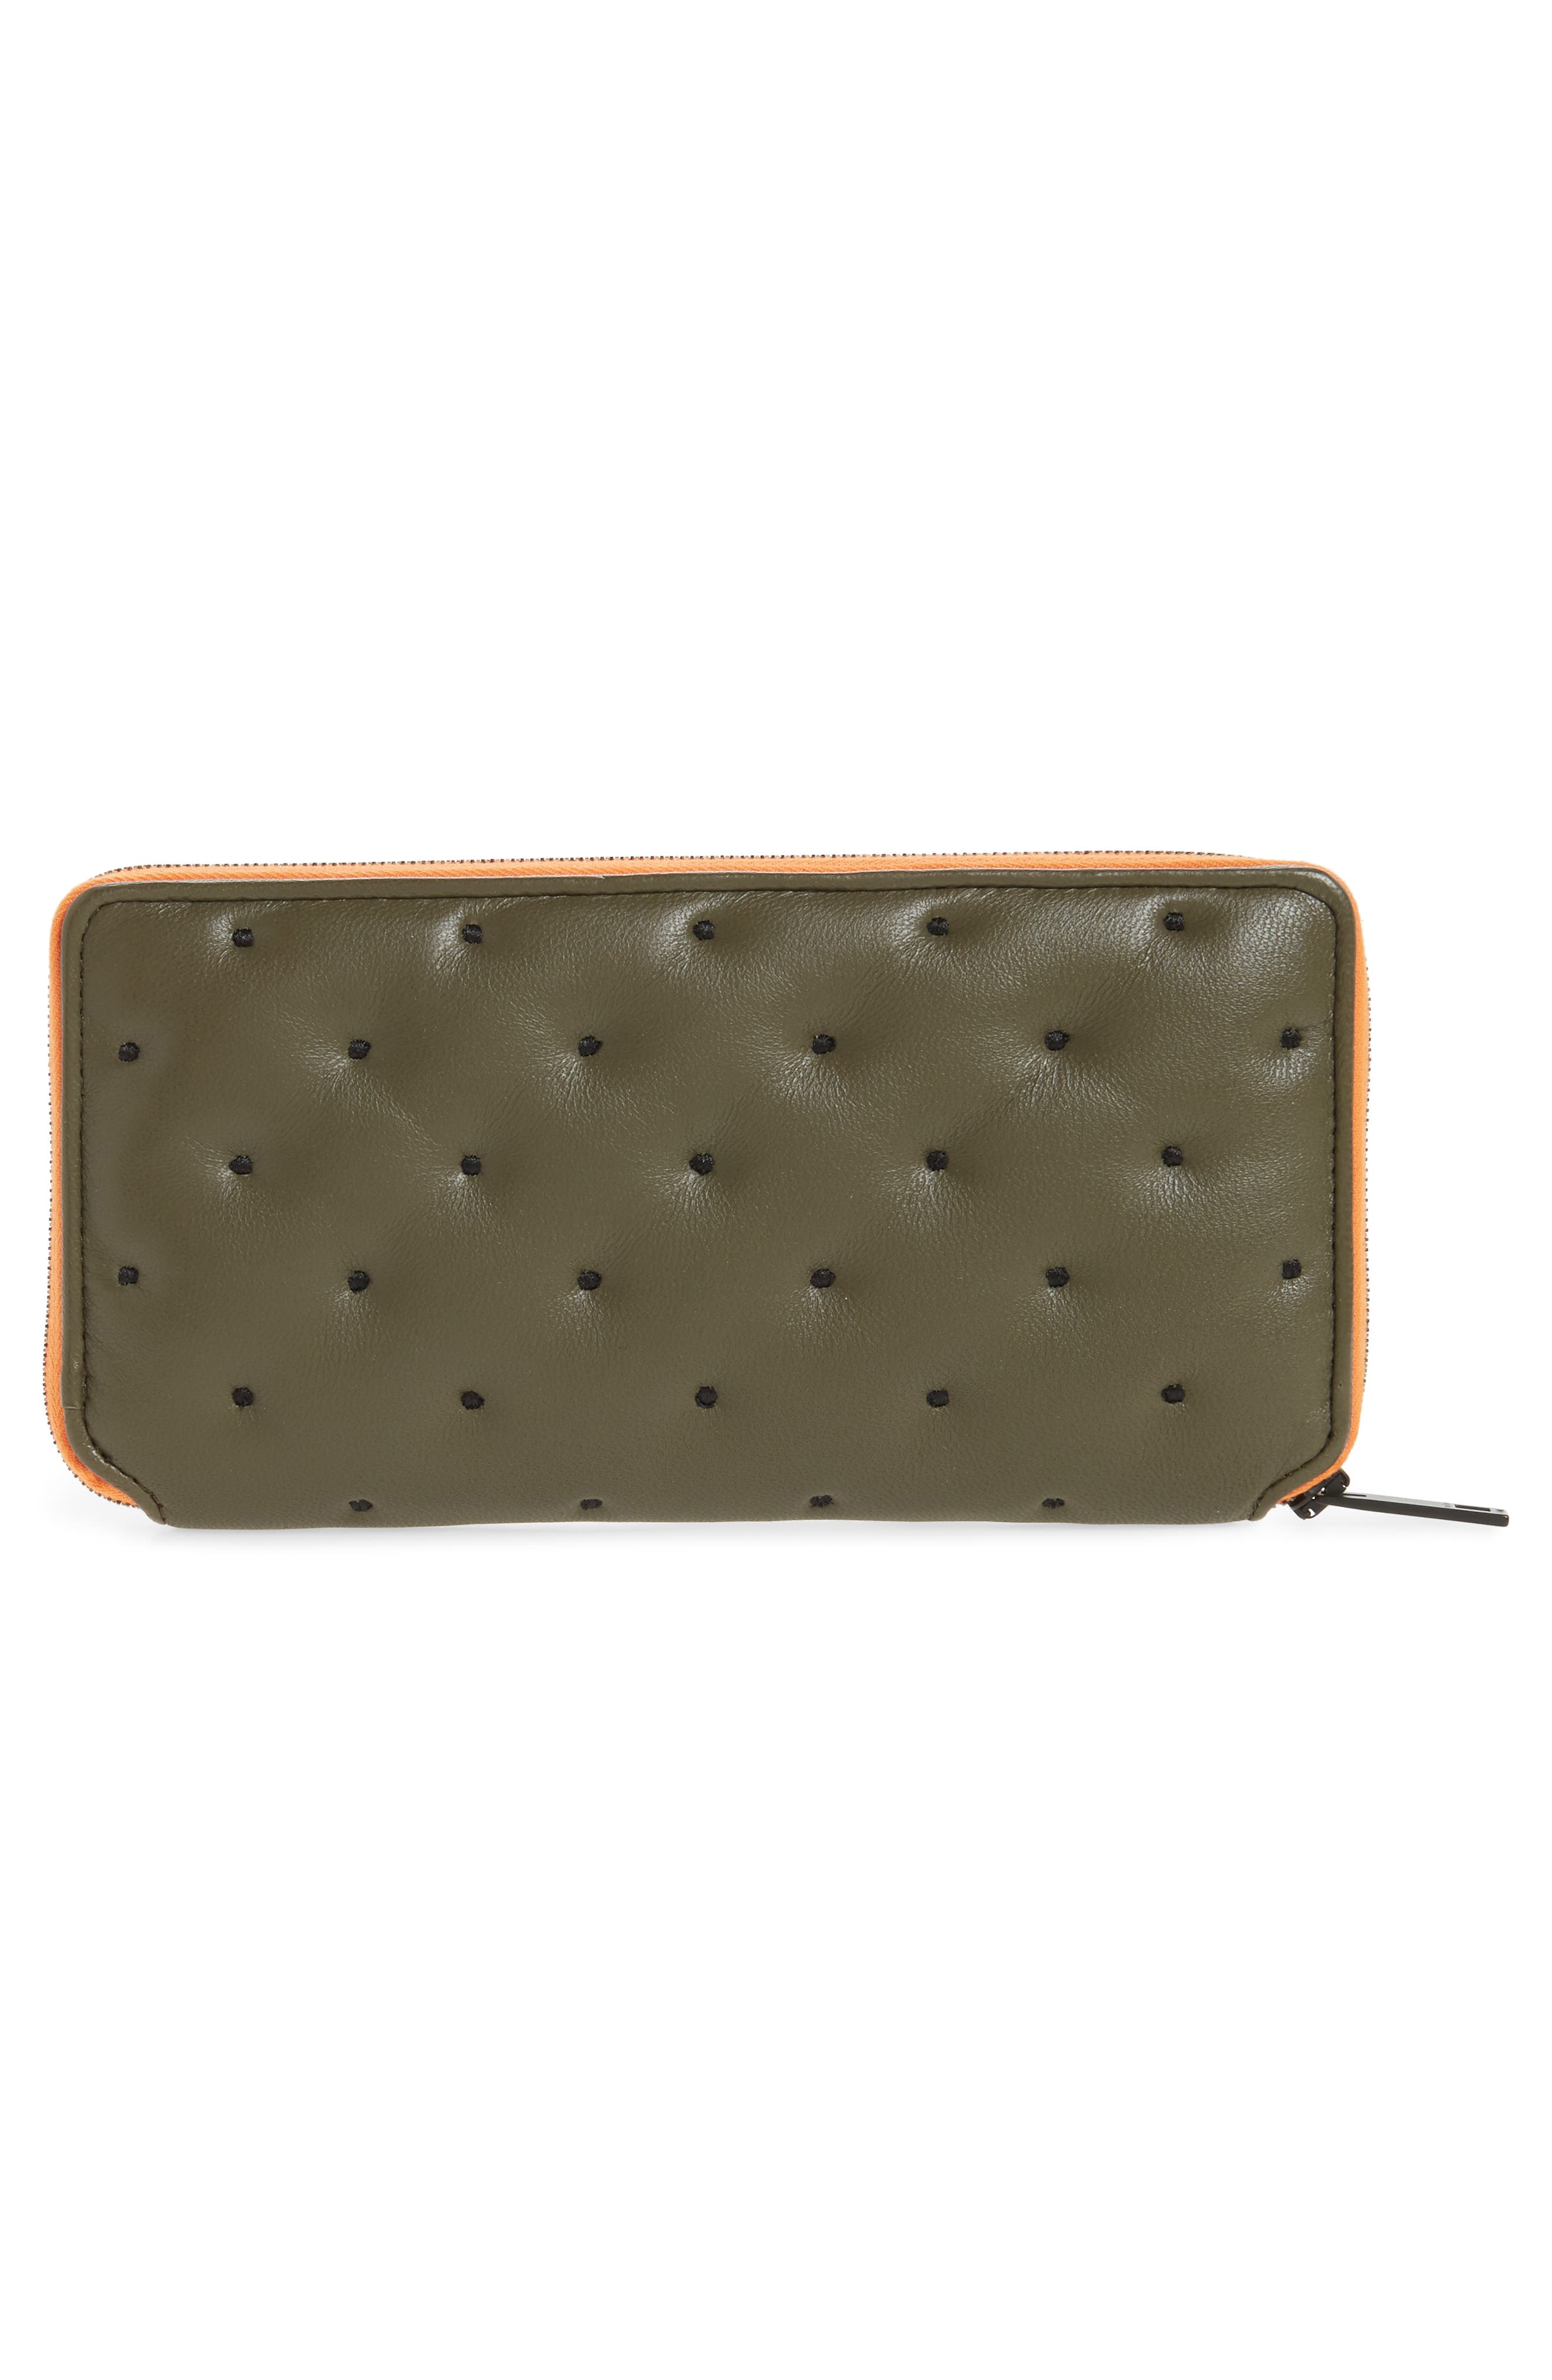 Dot Dash Quilted Leather Zip Around Wallet,                             Alternate thumbnail 4, color,                             Green Dot Dash Quilt